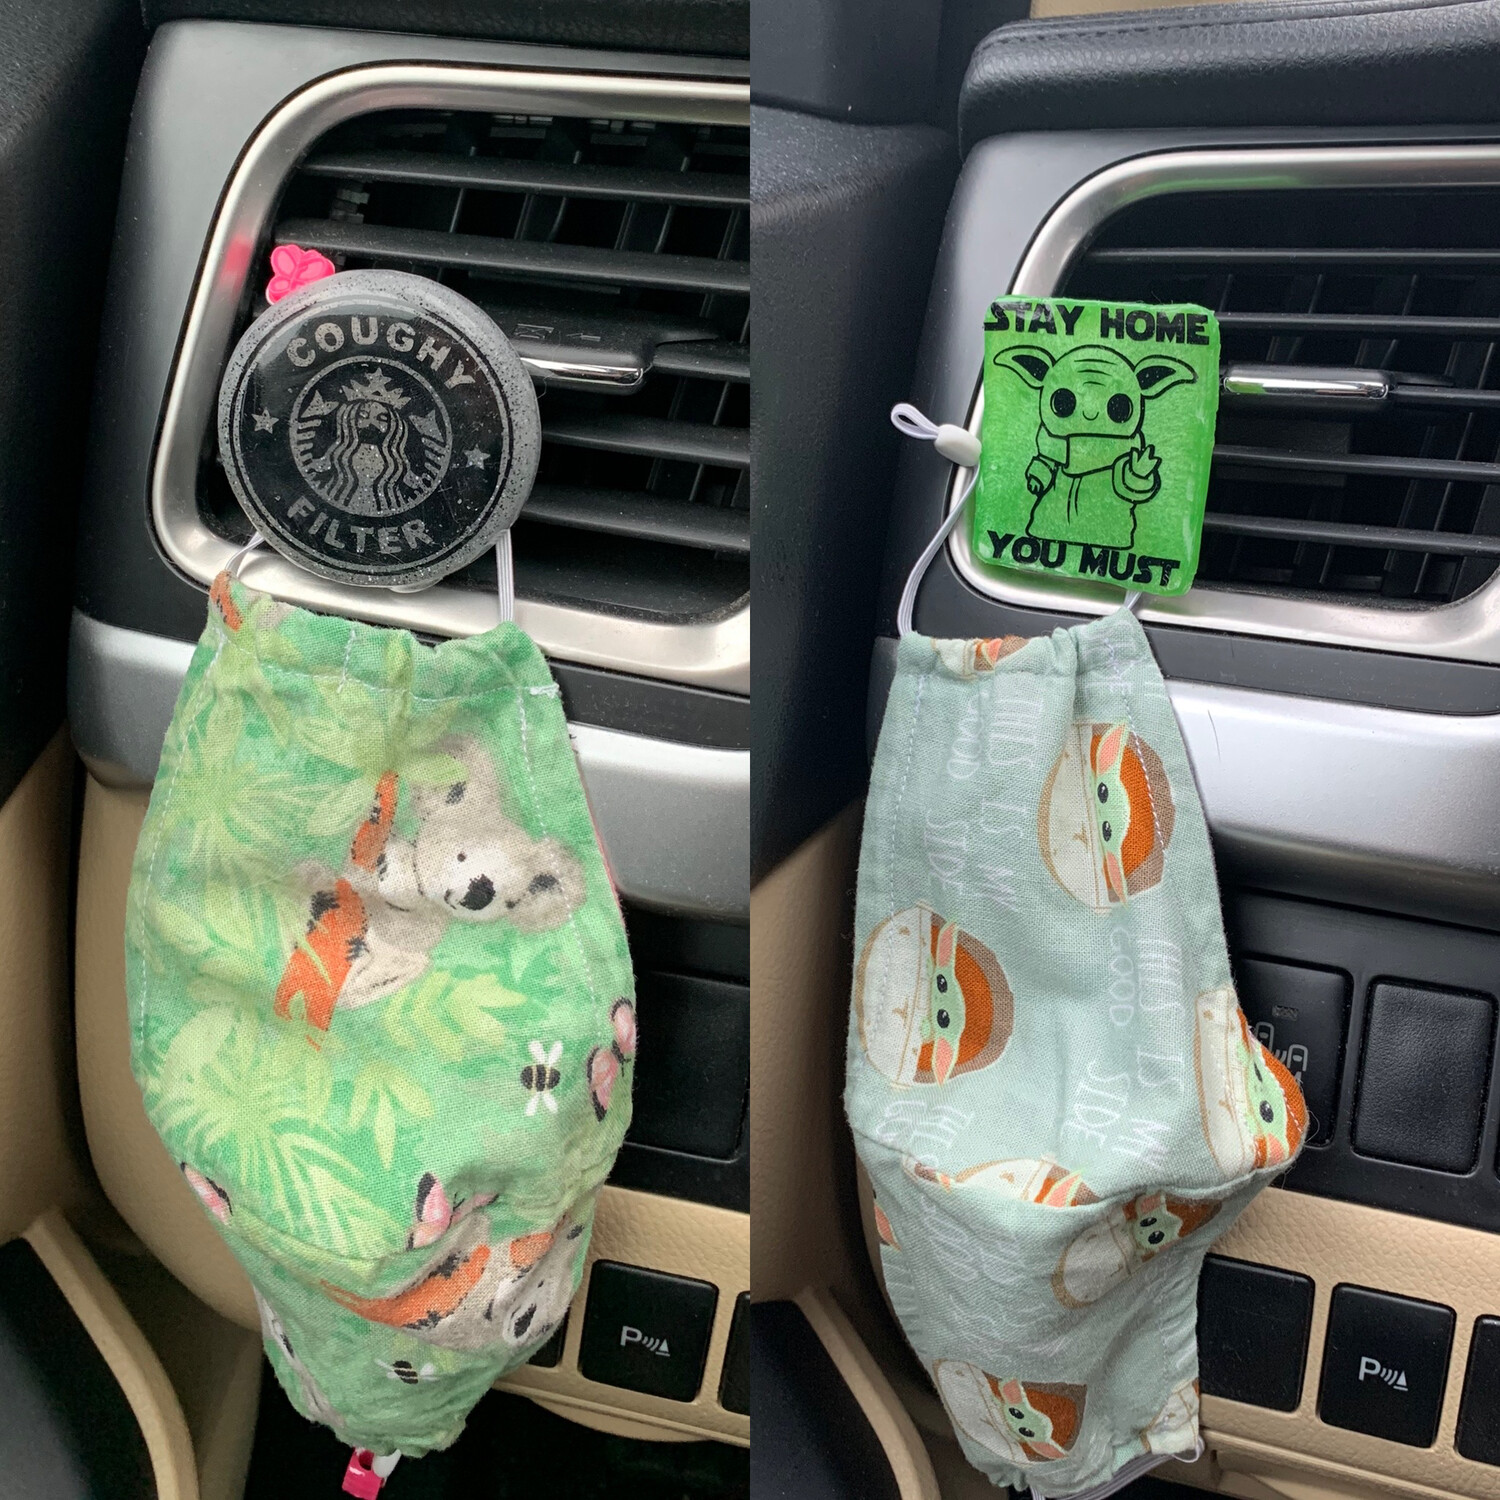 Car Vent Mask Holder With Optional Attachment For Aromatherapy